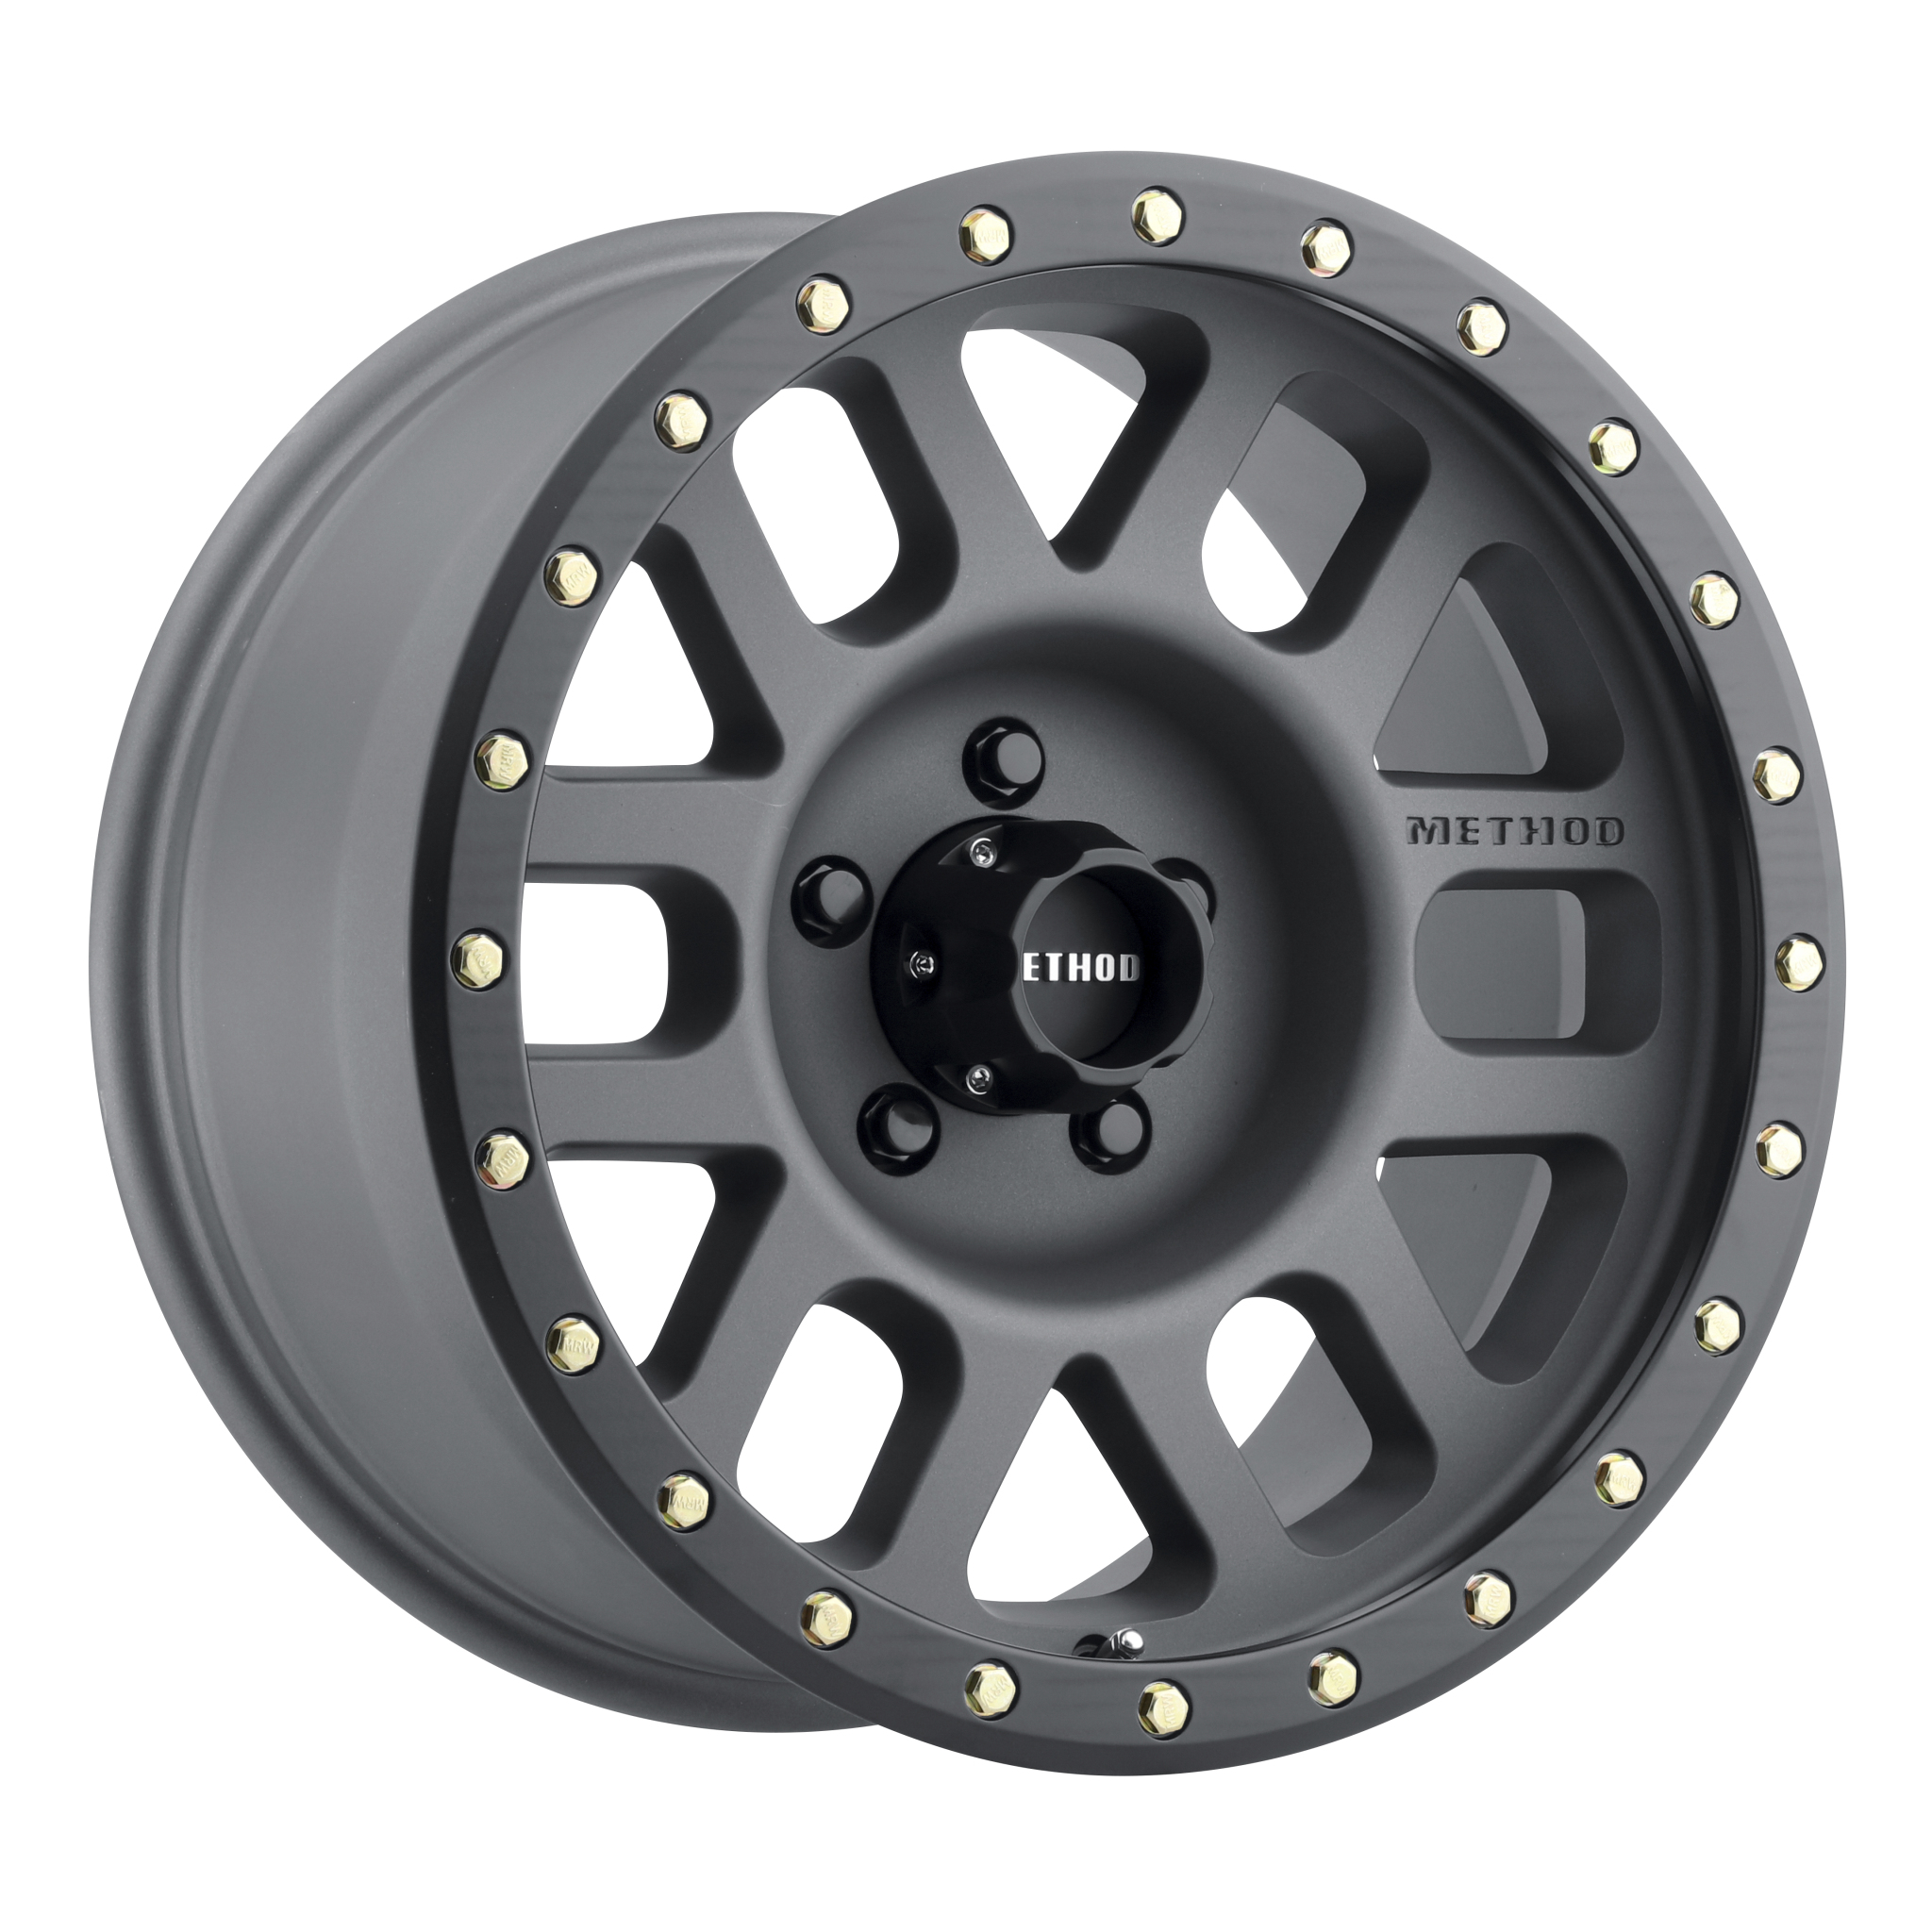 Method 309 Grid, 18x9, +18mm Offset, 5x150, 116.5mm Centerbore, Titanium/Black Street Loc